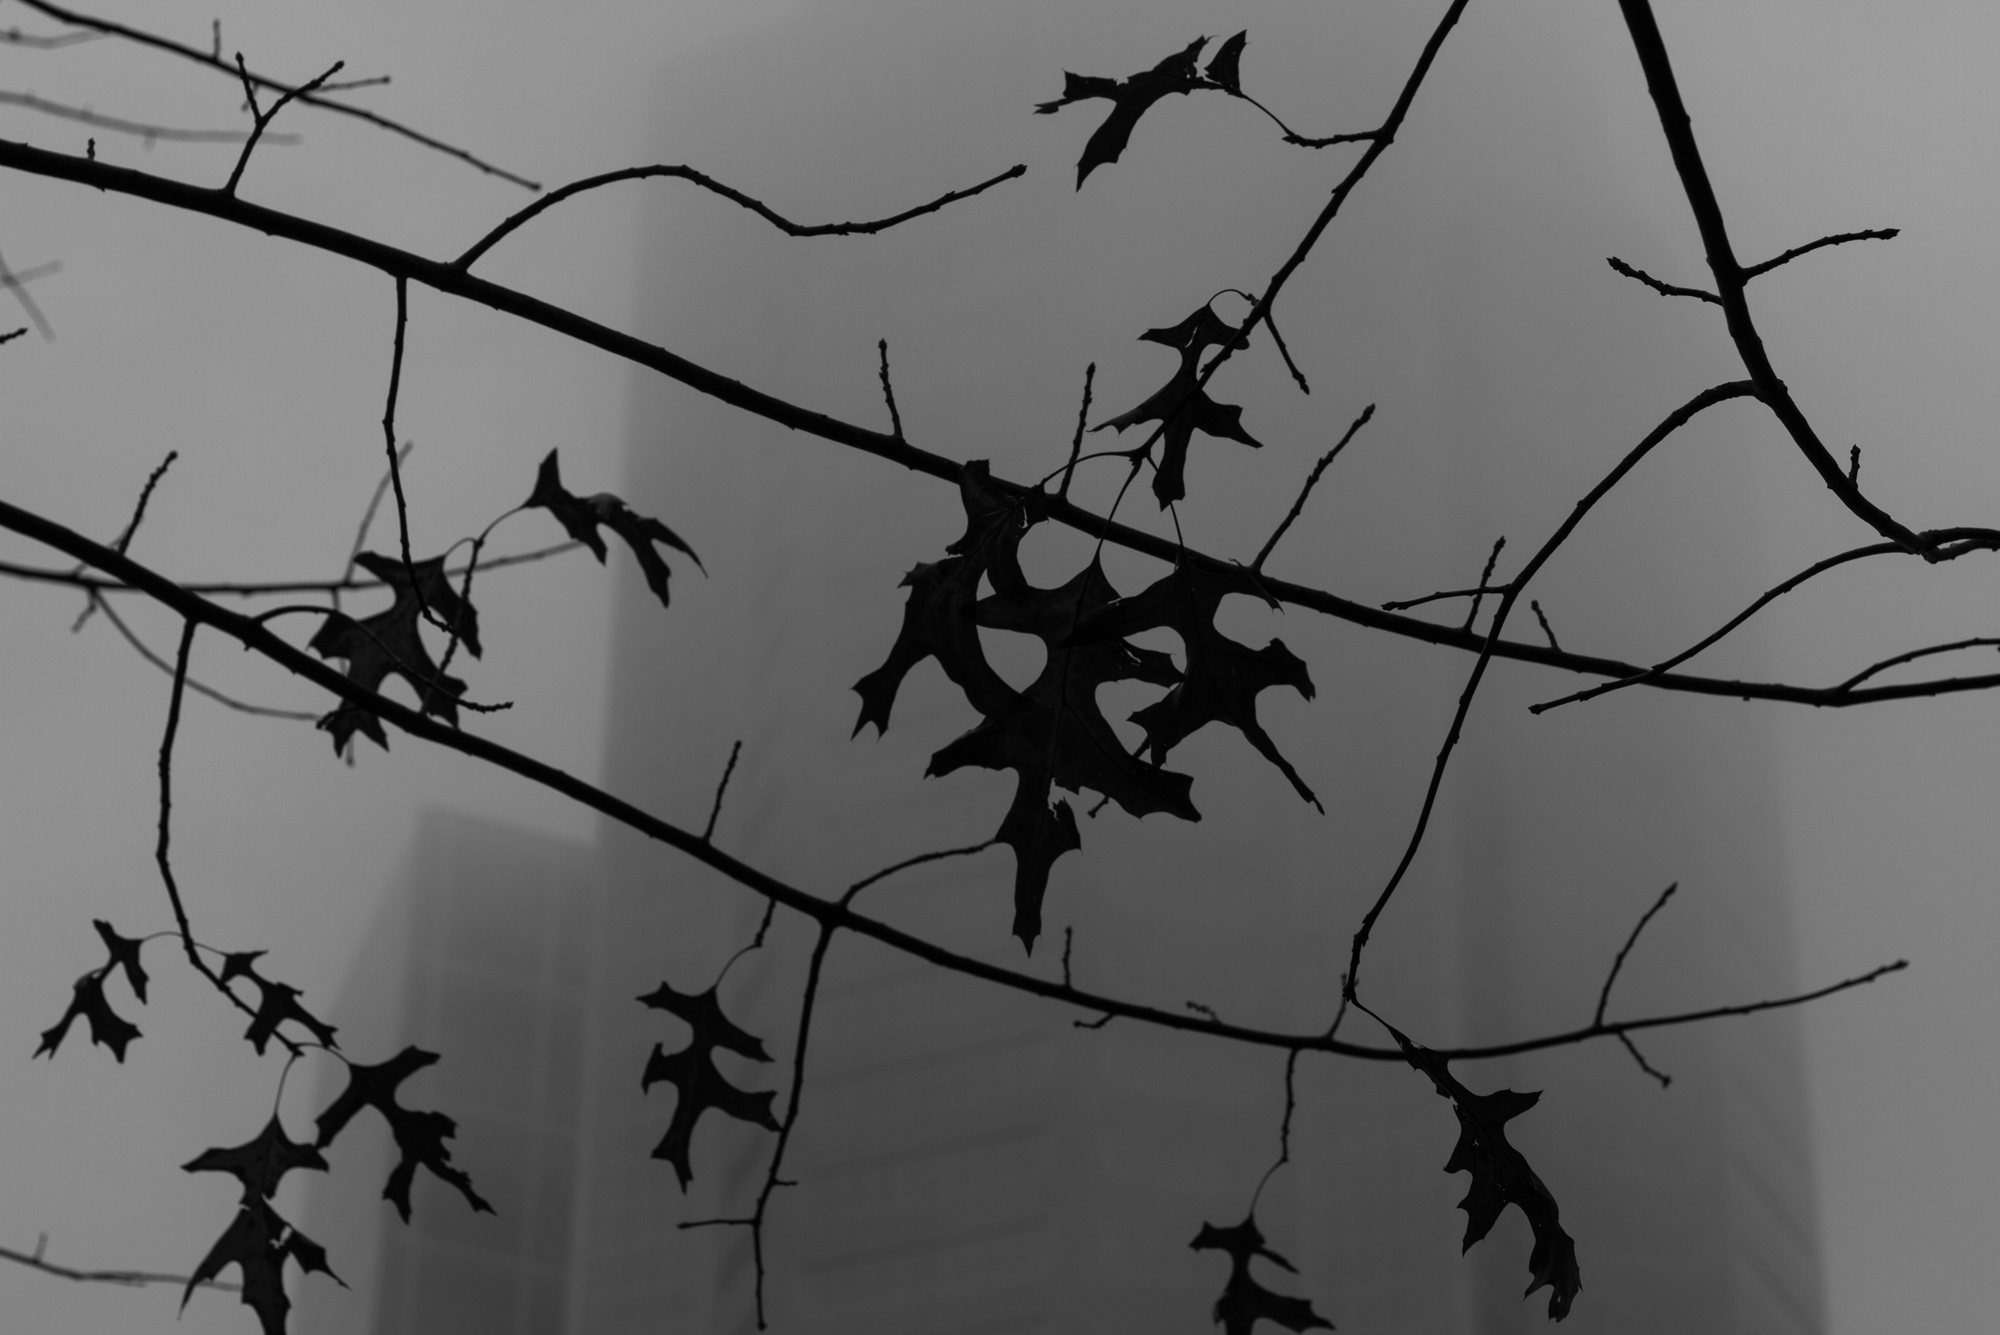 A few leaves hang on to branches at foggy dusk